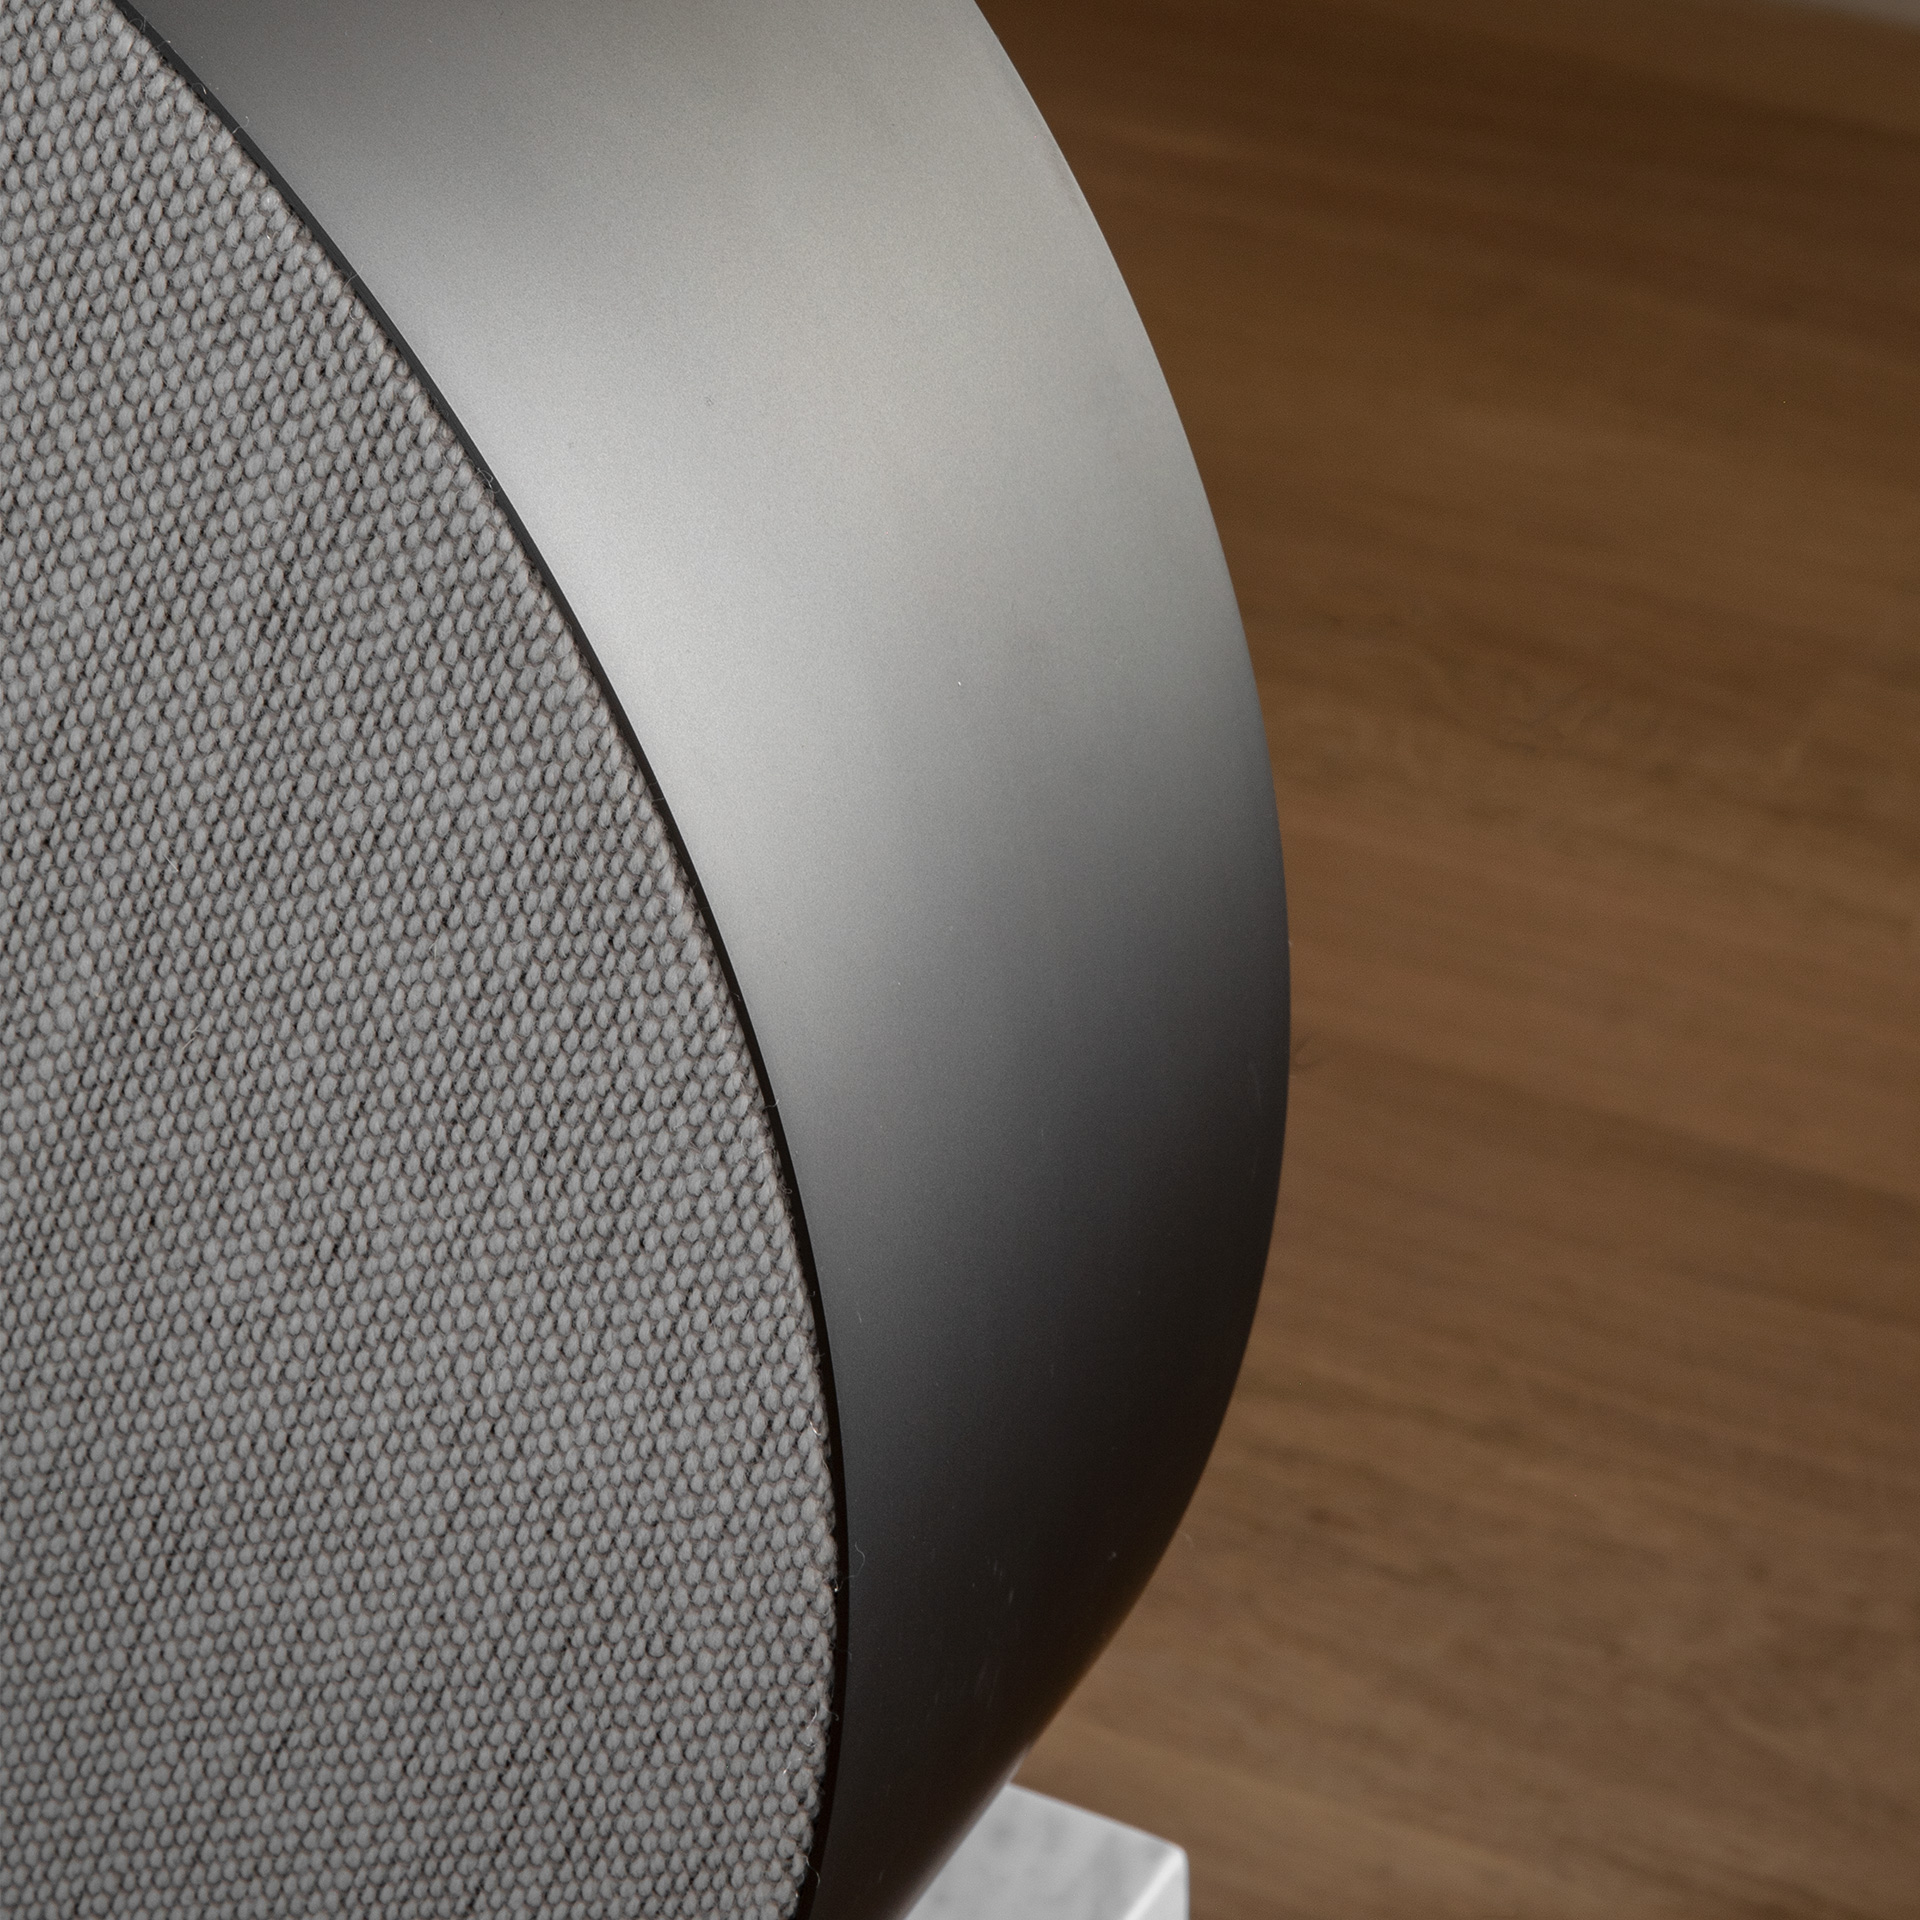 Beosound Edge contrast detail by Norm Architects